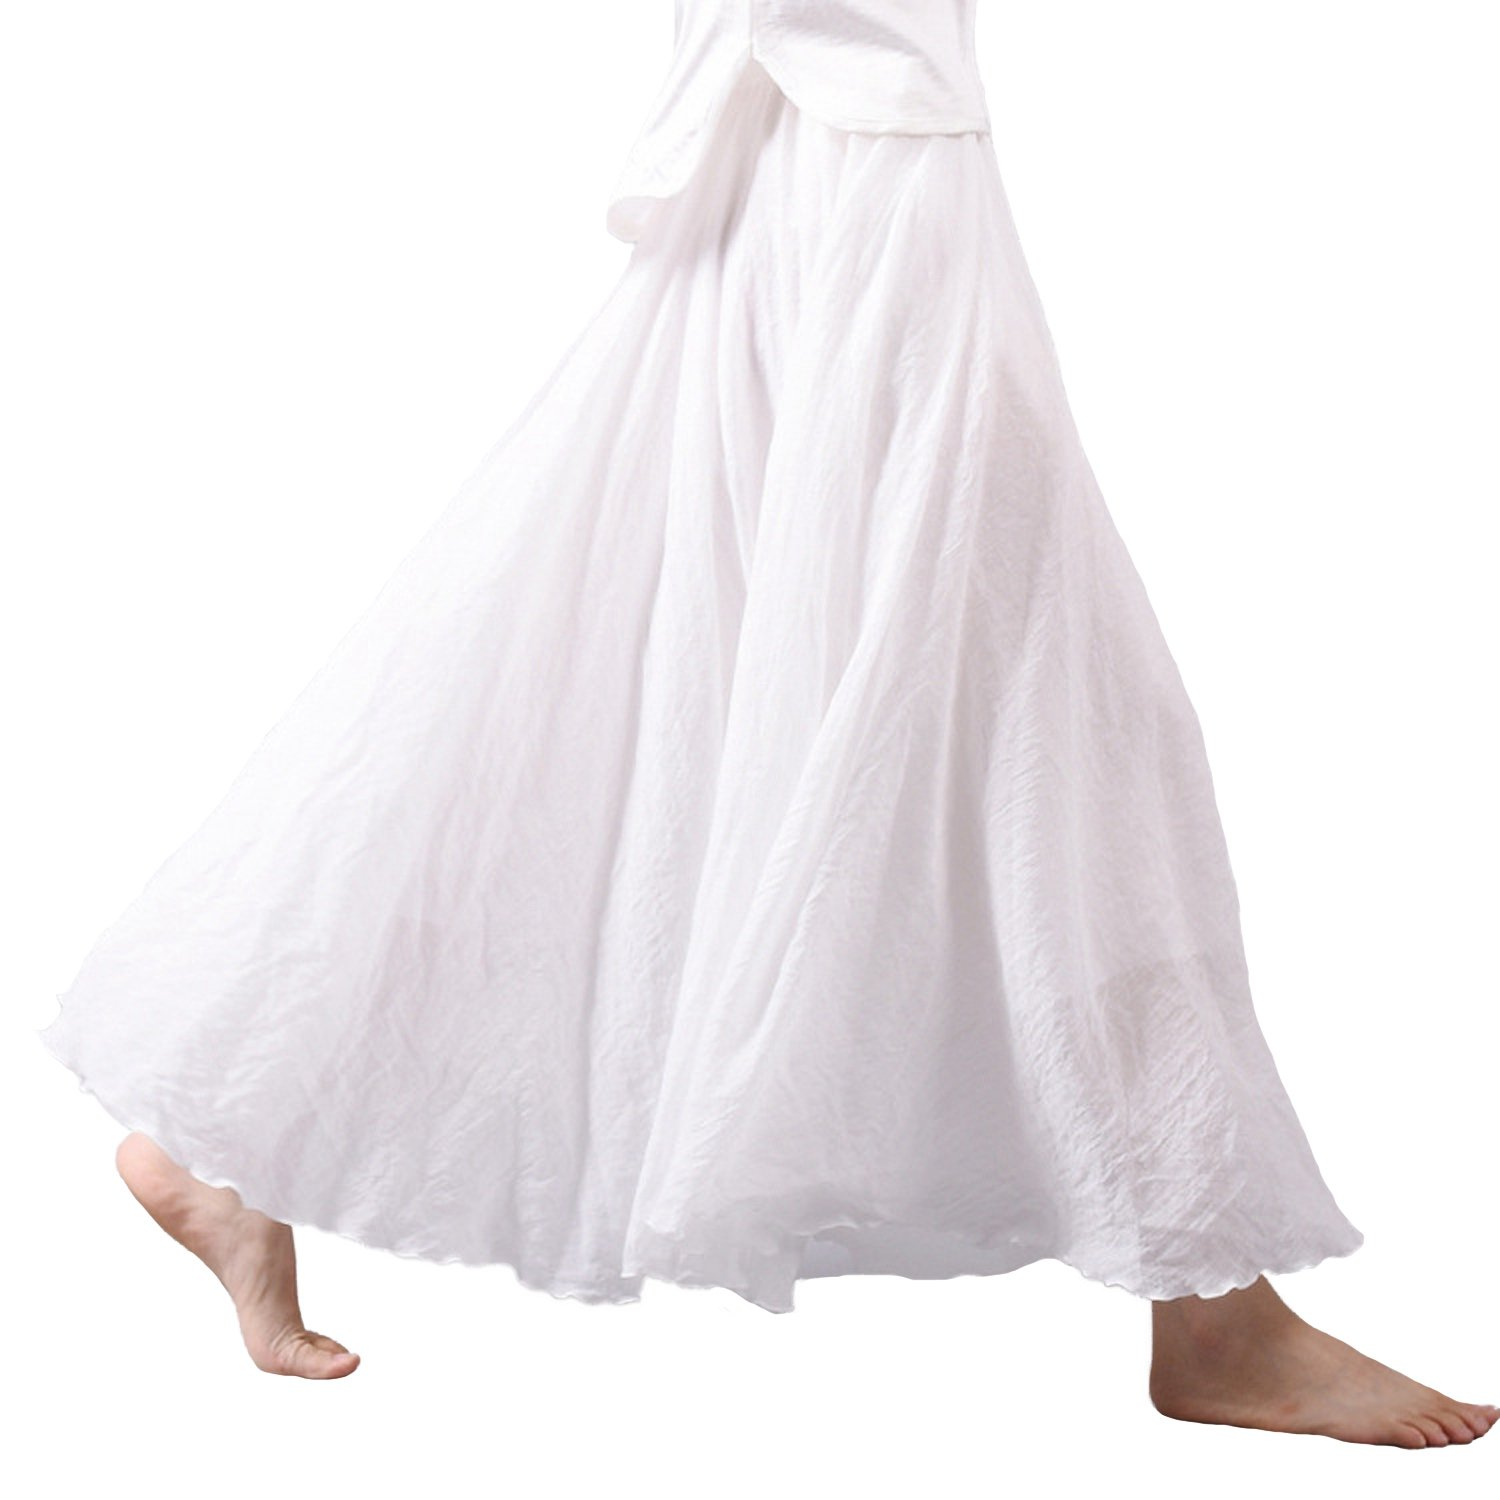 Nicetage Womens Bohemian Style Elastic Waist Band Cotton Linen Long Maxi Skirt Dress ,White,95cm